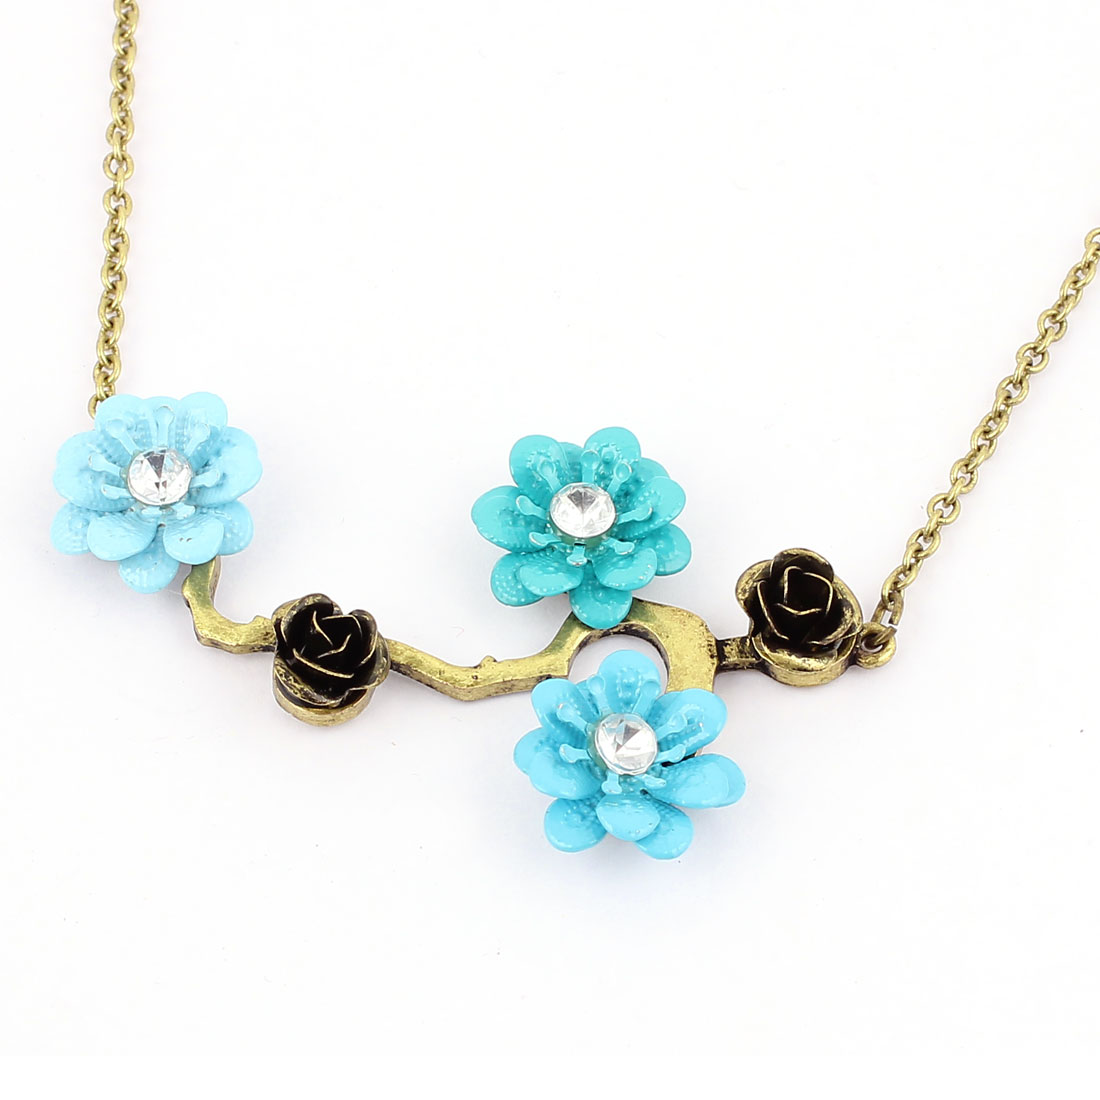 Tricolor Plastic Rhinestones Decor Metal Flowers Shape Design Lobster Buckle Strip Link Chain Necklace Neckwear Collar for Ladies